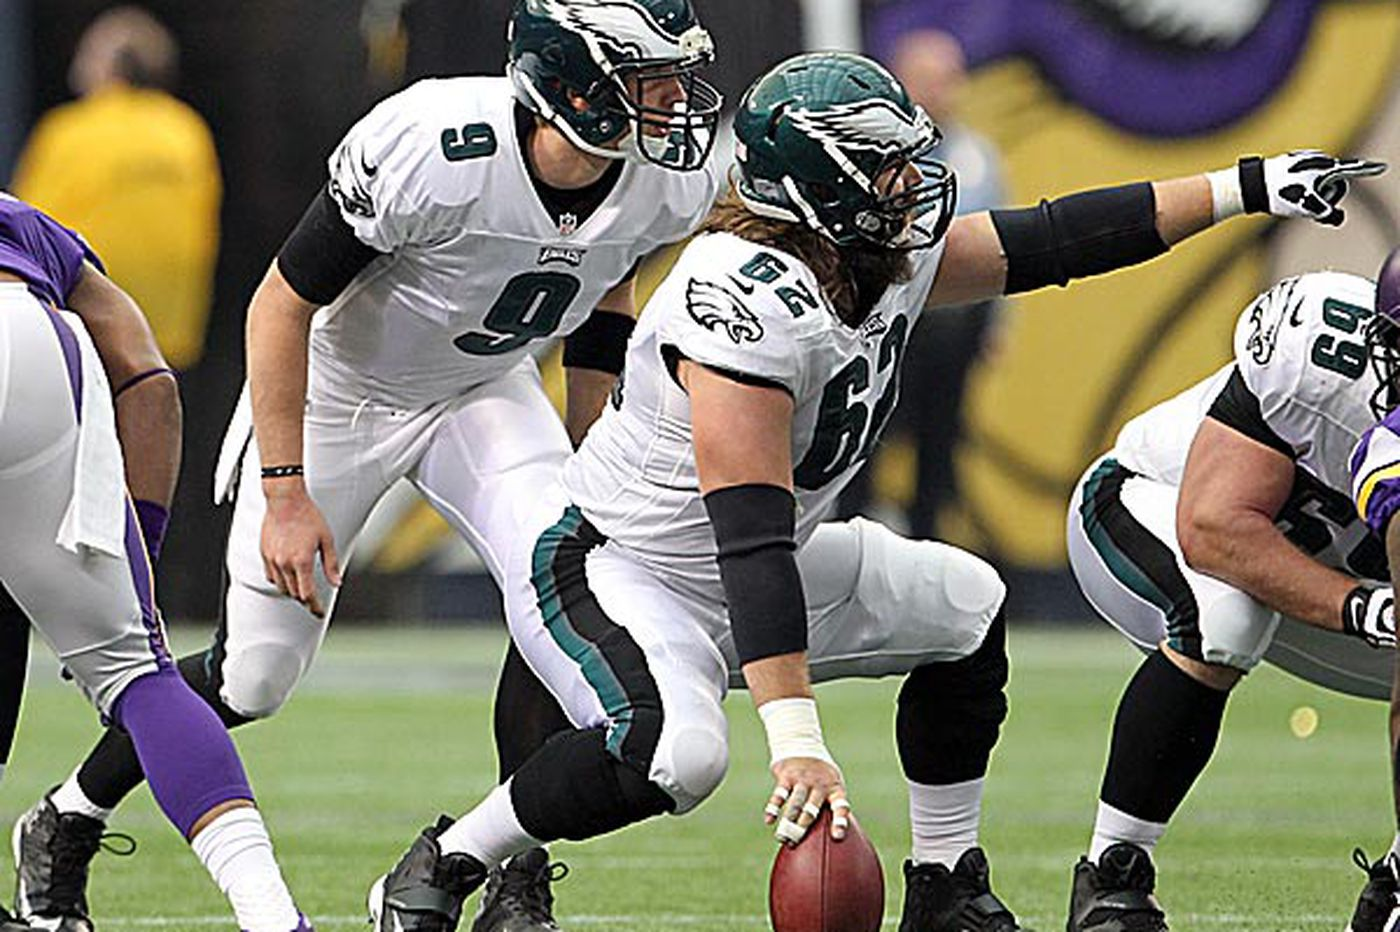 Eagles Notebook: Eagles were more than half confident